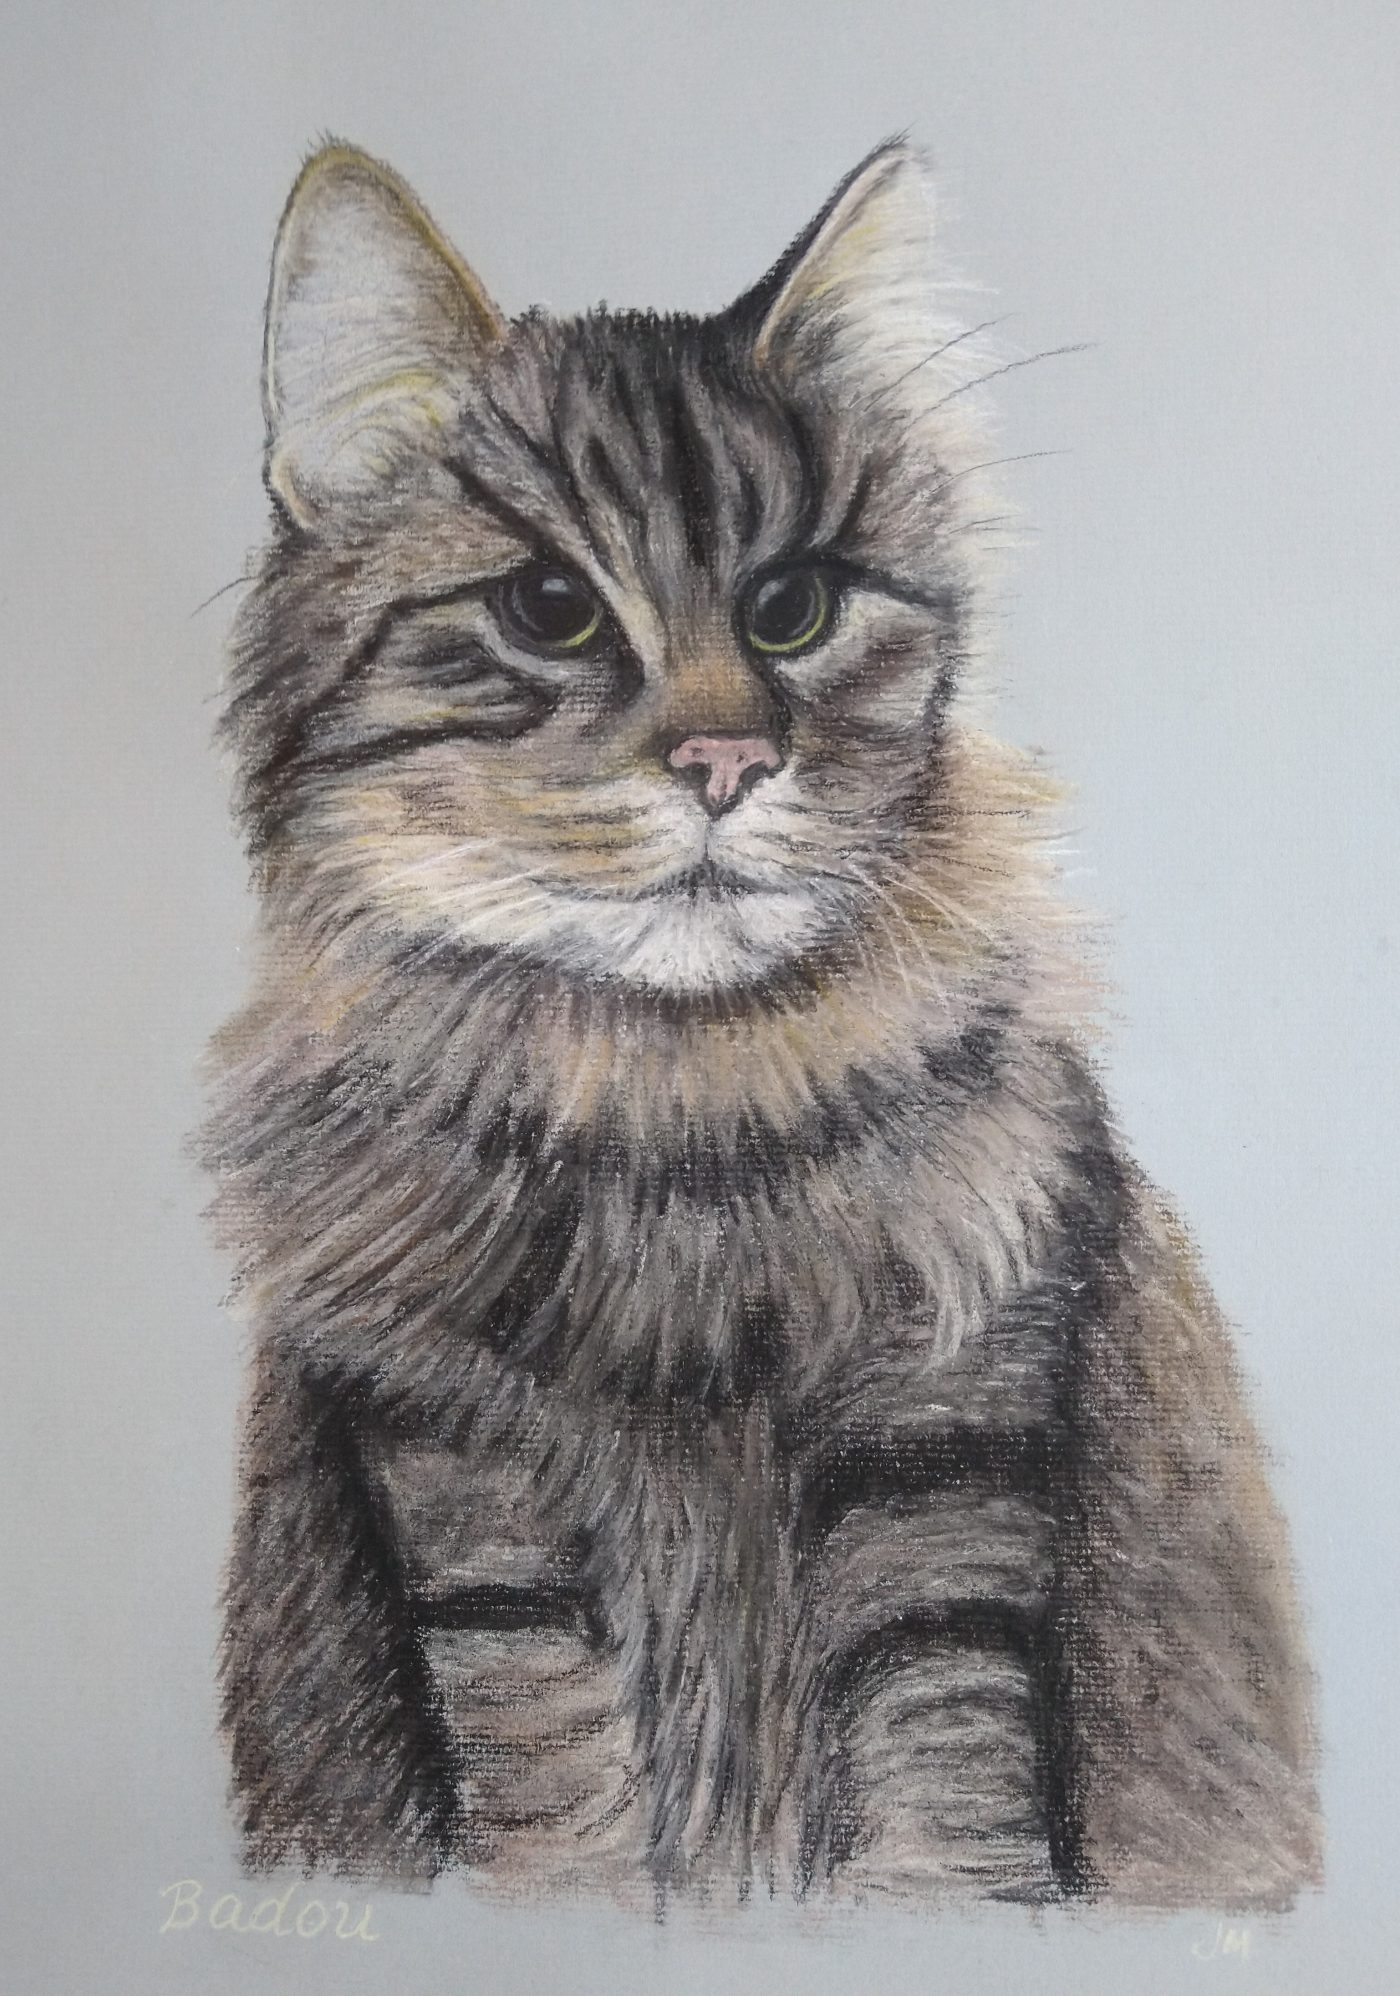 Pet Portrait, Cat, Cat Portrait, Pastel, Artist, Drawing, Painting, hand drawn